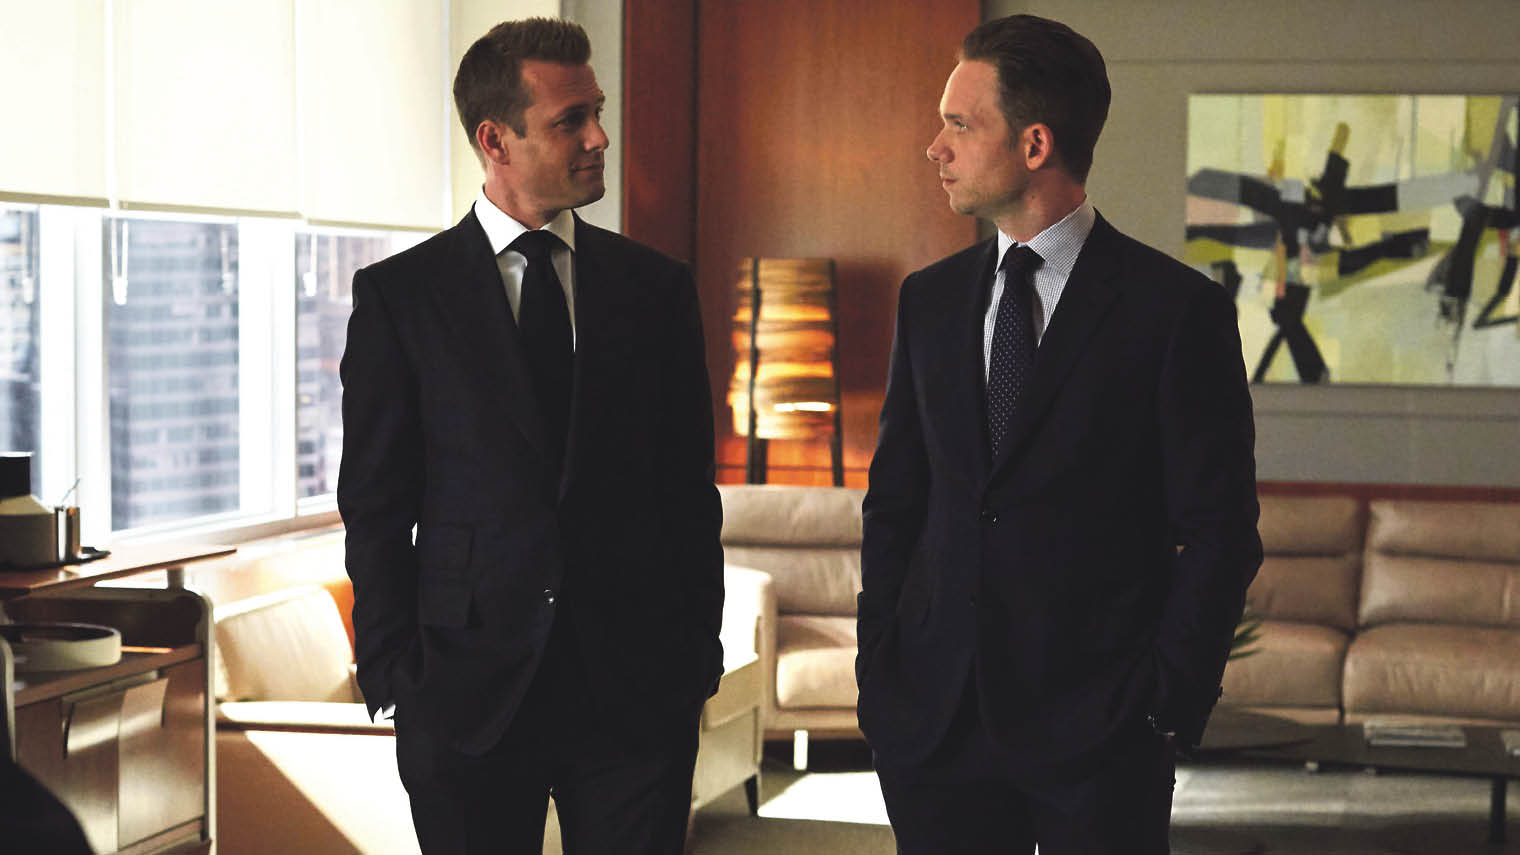 work friendships - characters from Suits